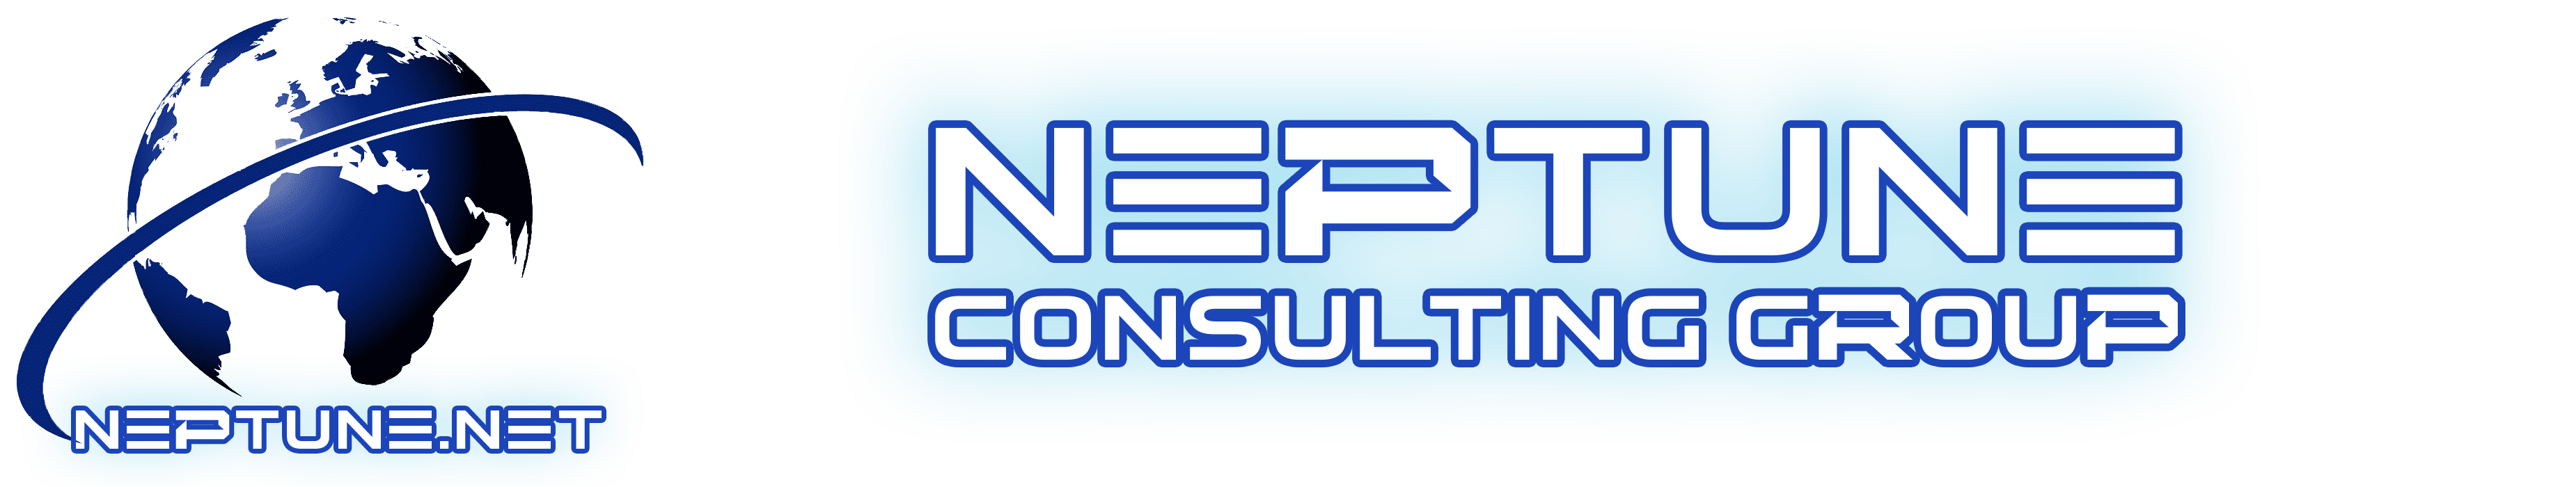 Neptune Consulting Group